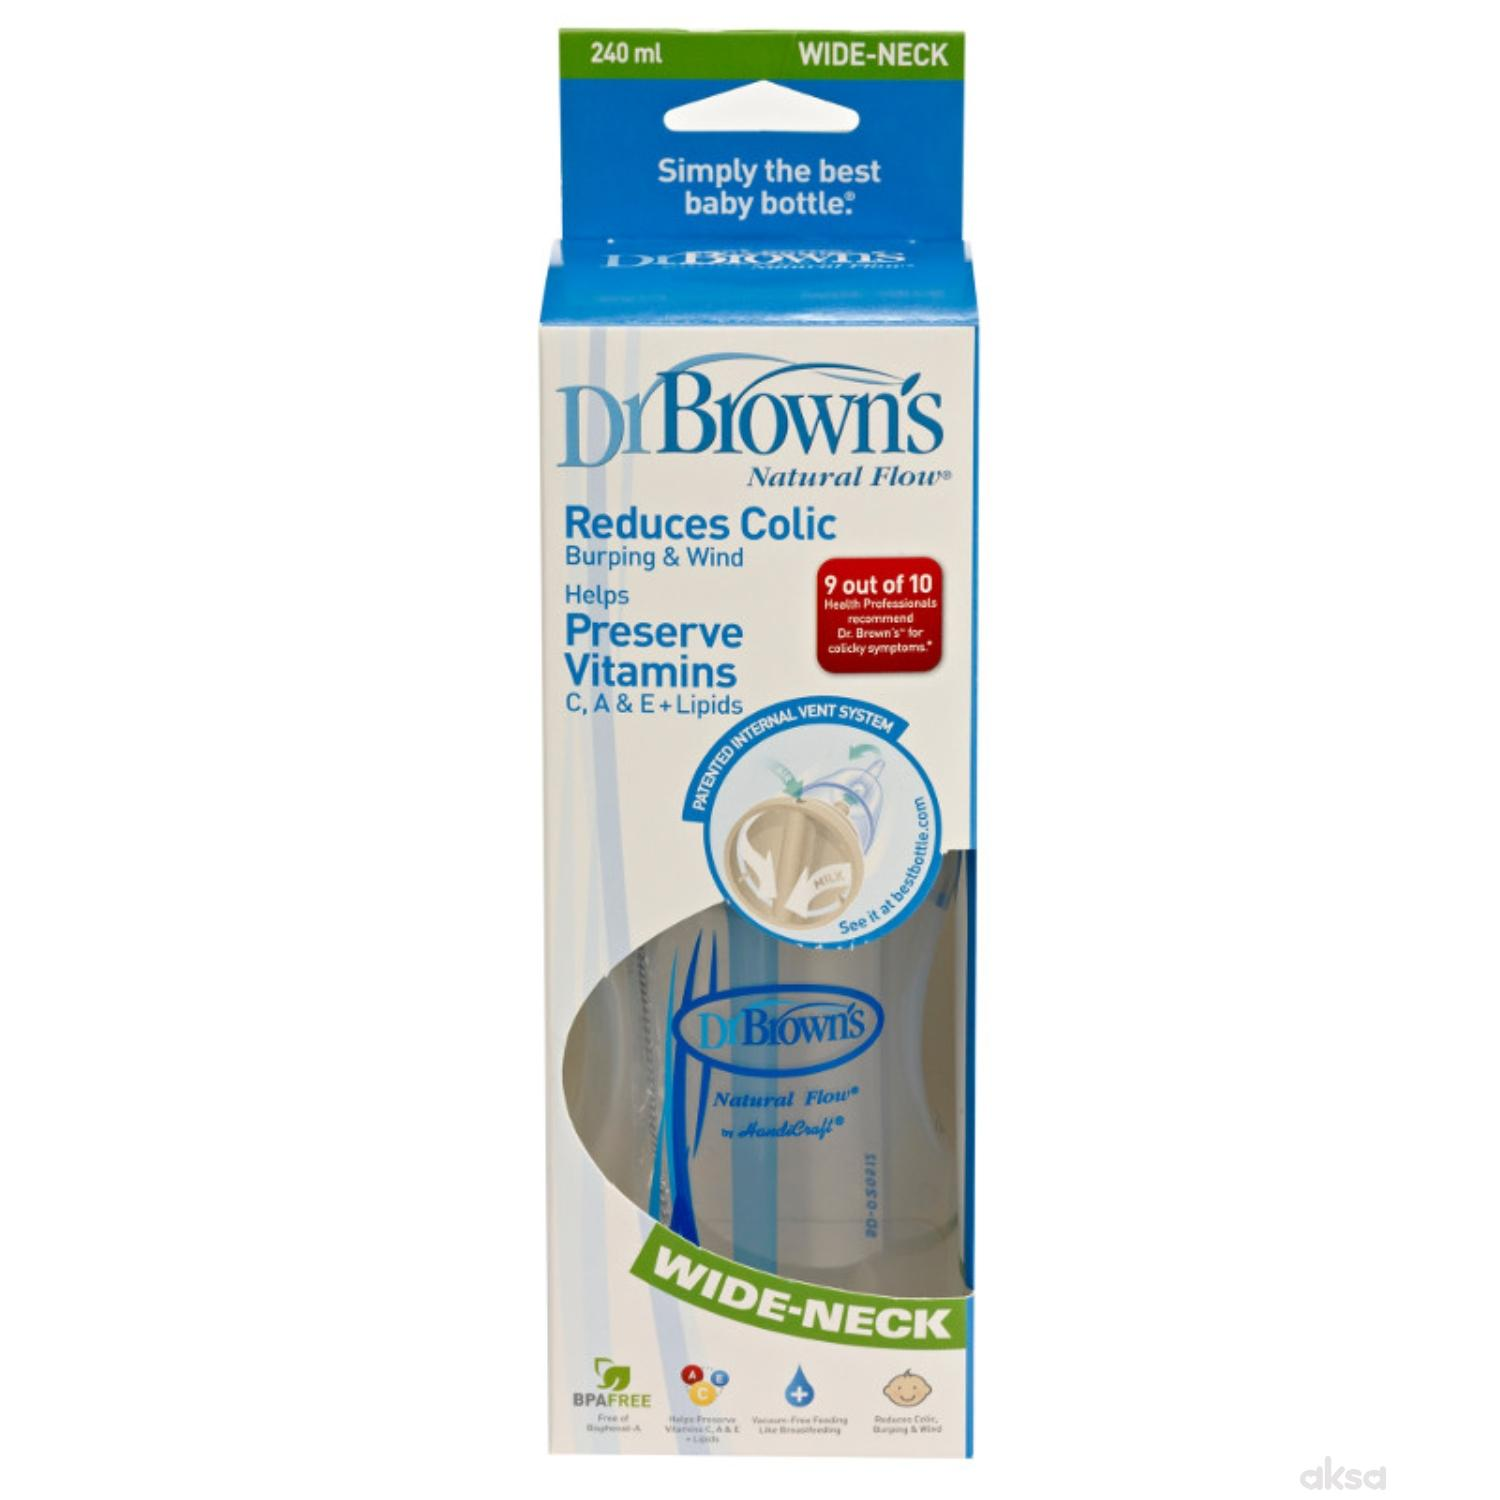 Dr.Browns wide neck plastična flašica 240ml